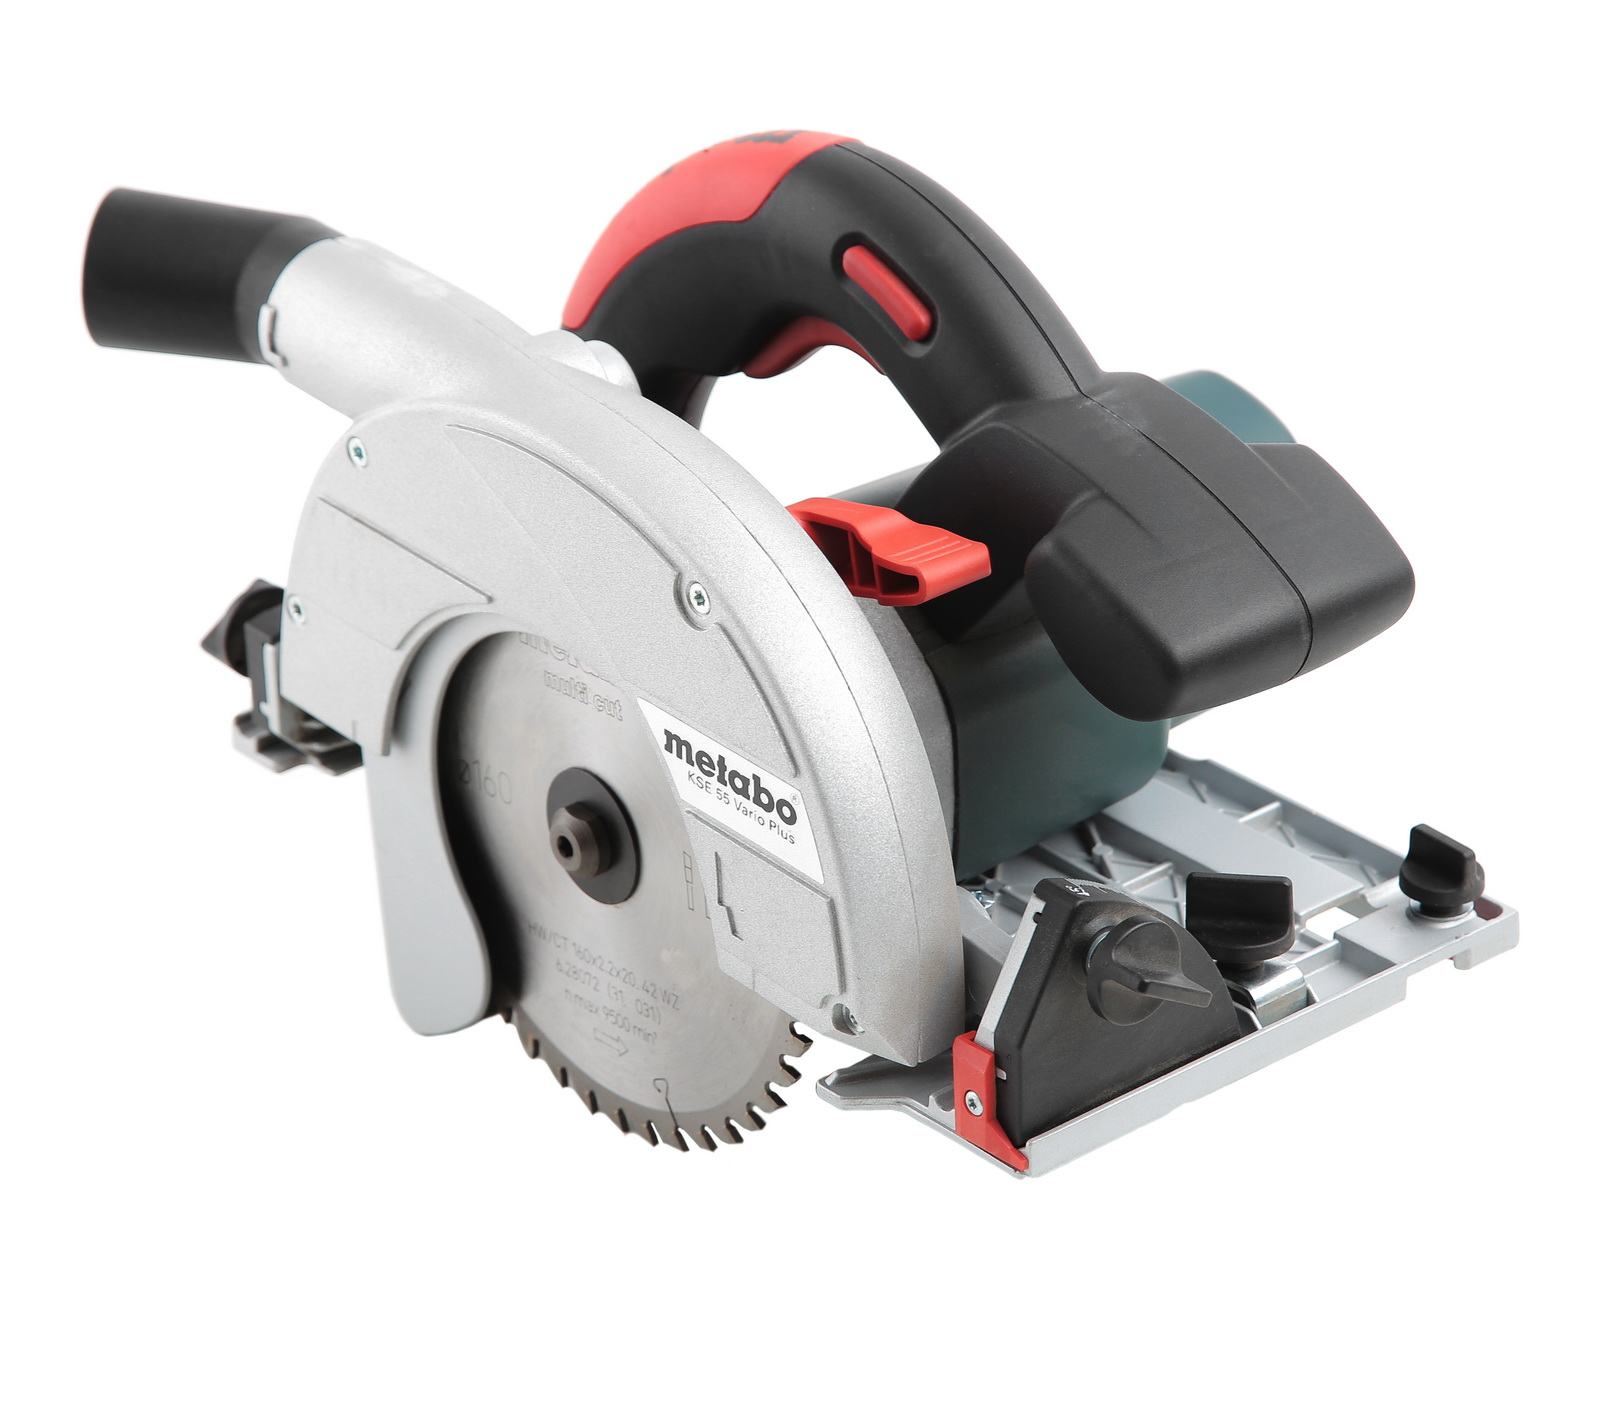 Погружная циркулярная пила  Metabo Kse 55 vario plus (601204000)